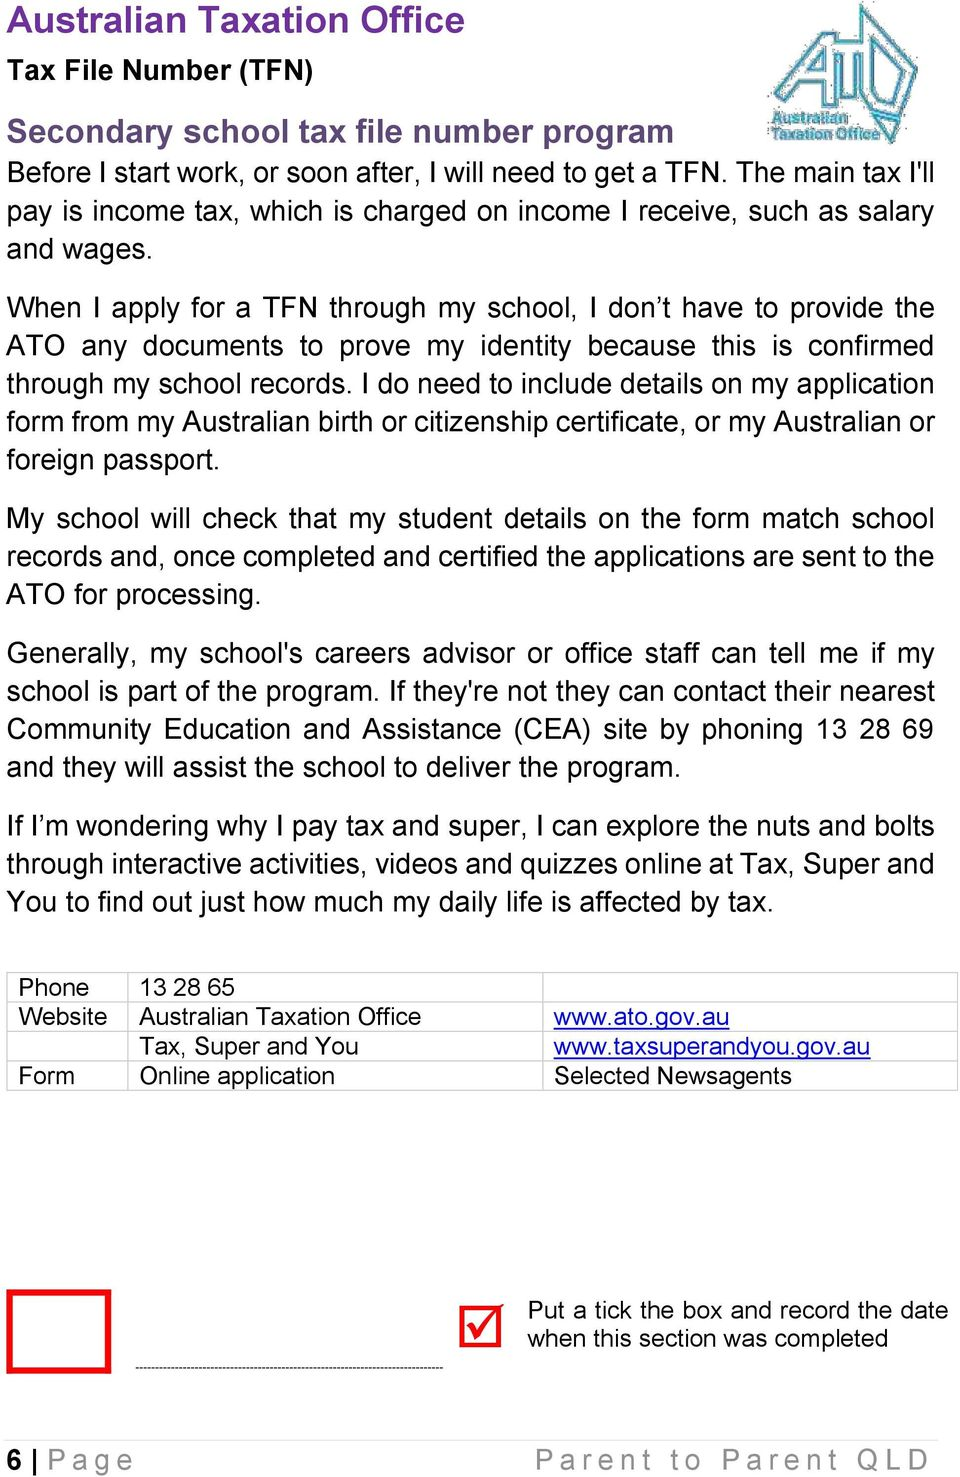 When I apply for a TFN through my school, I don t have to provide the ATO any documents to prove my identity because this is confirmed through my school records.